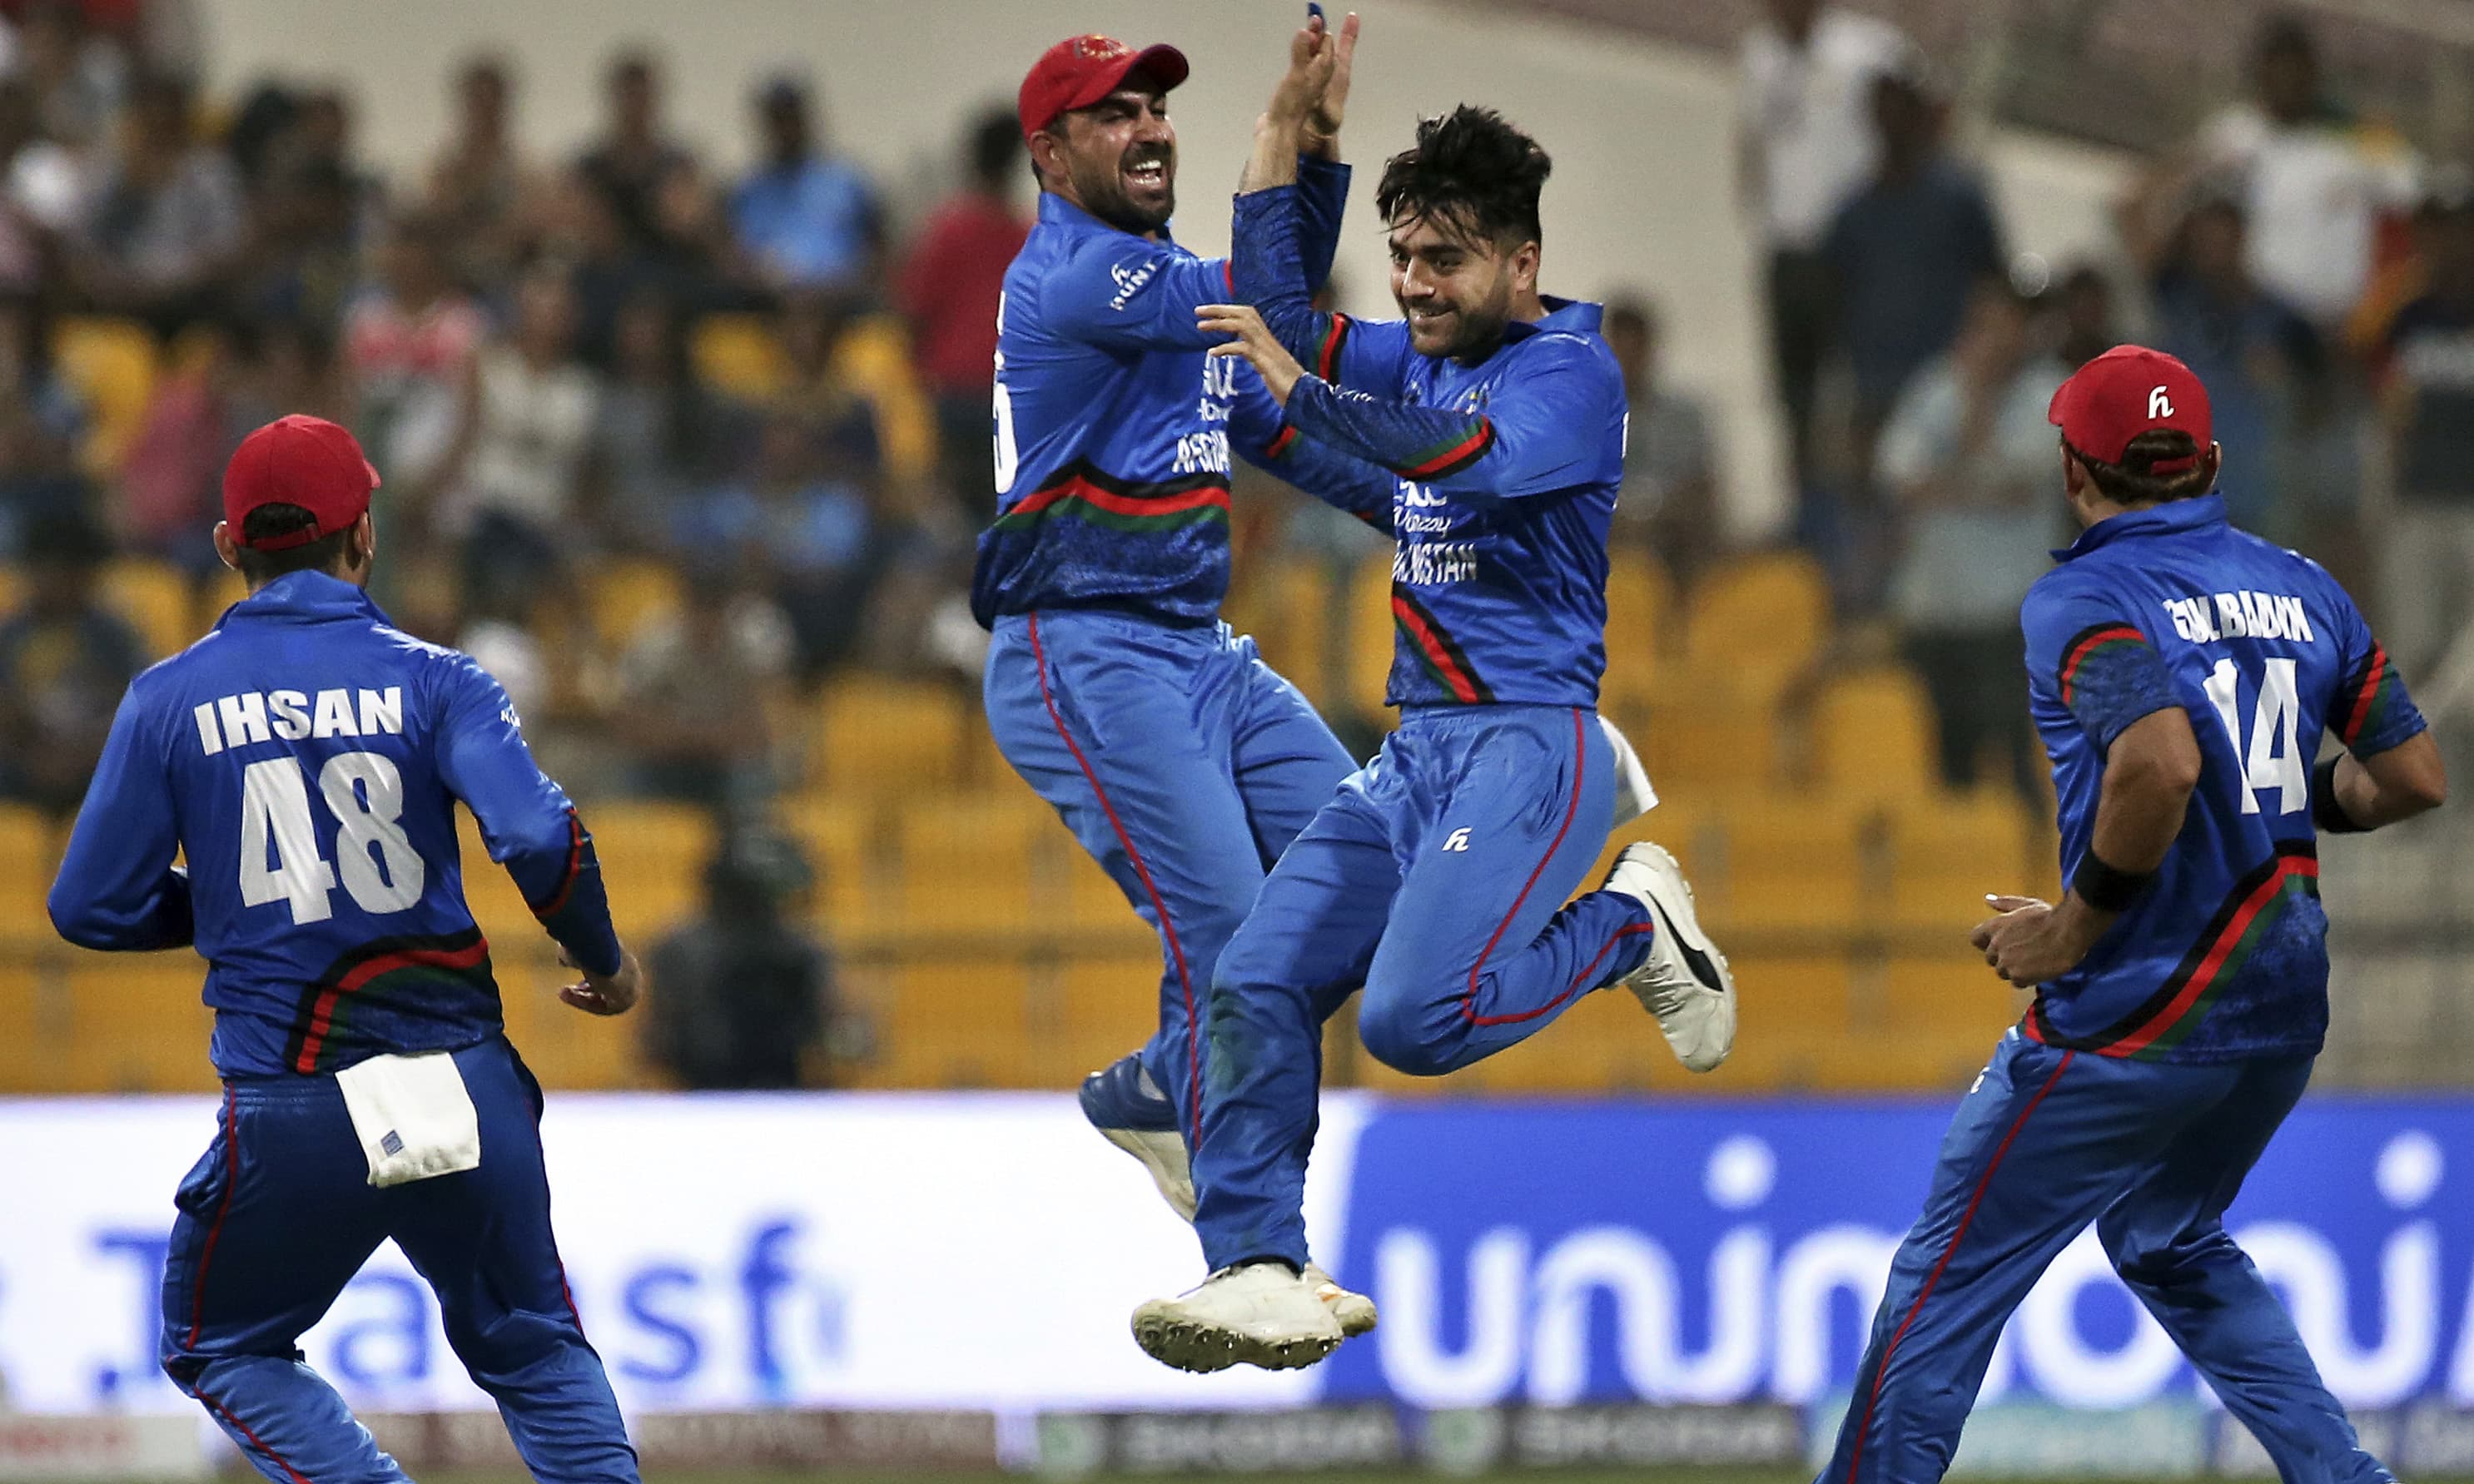 Afghanistan knock Sri Lanka out of Asia Cup after upset win